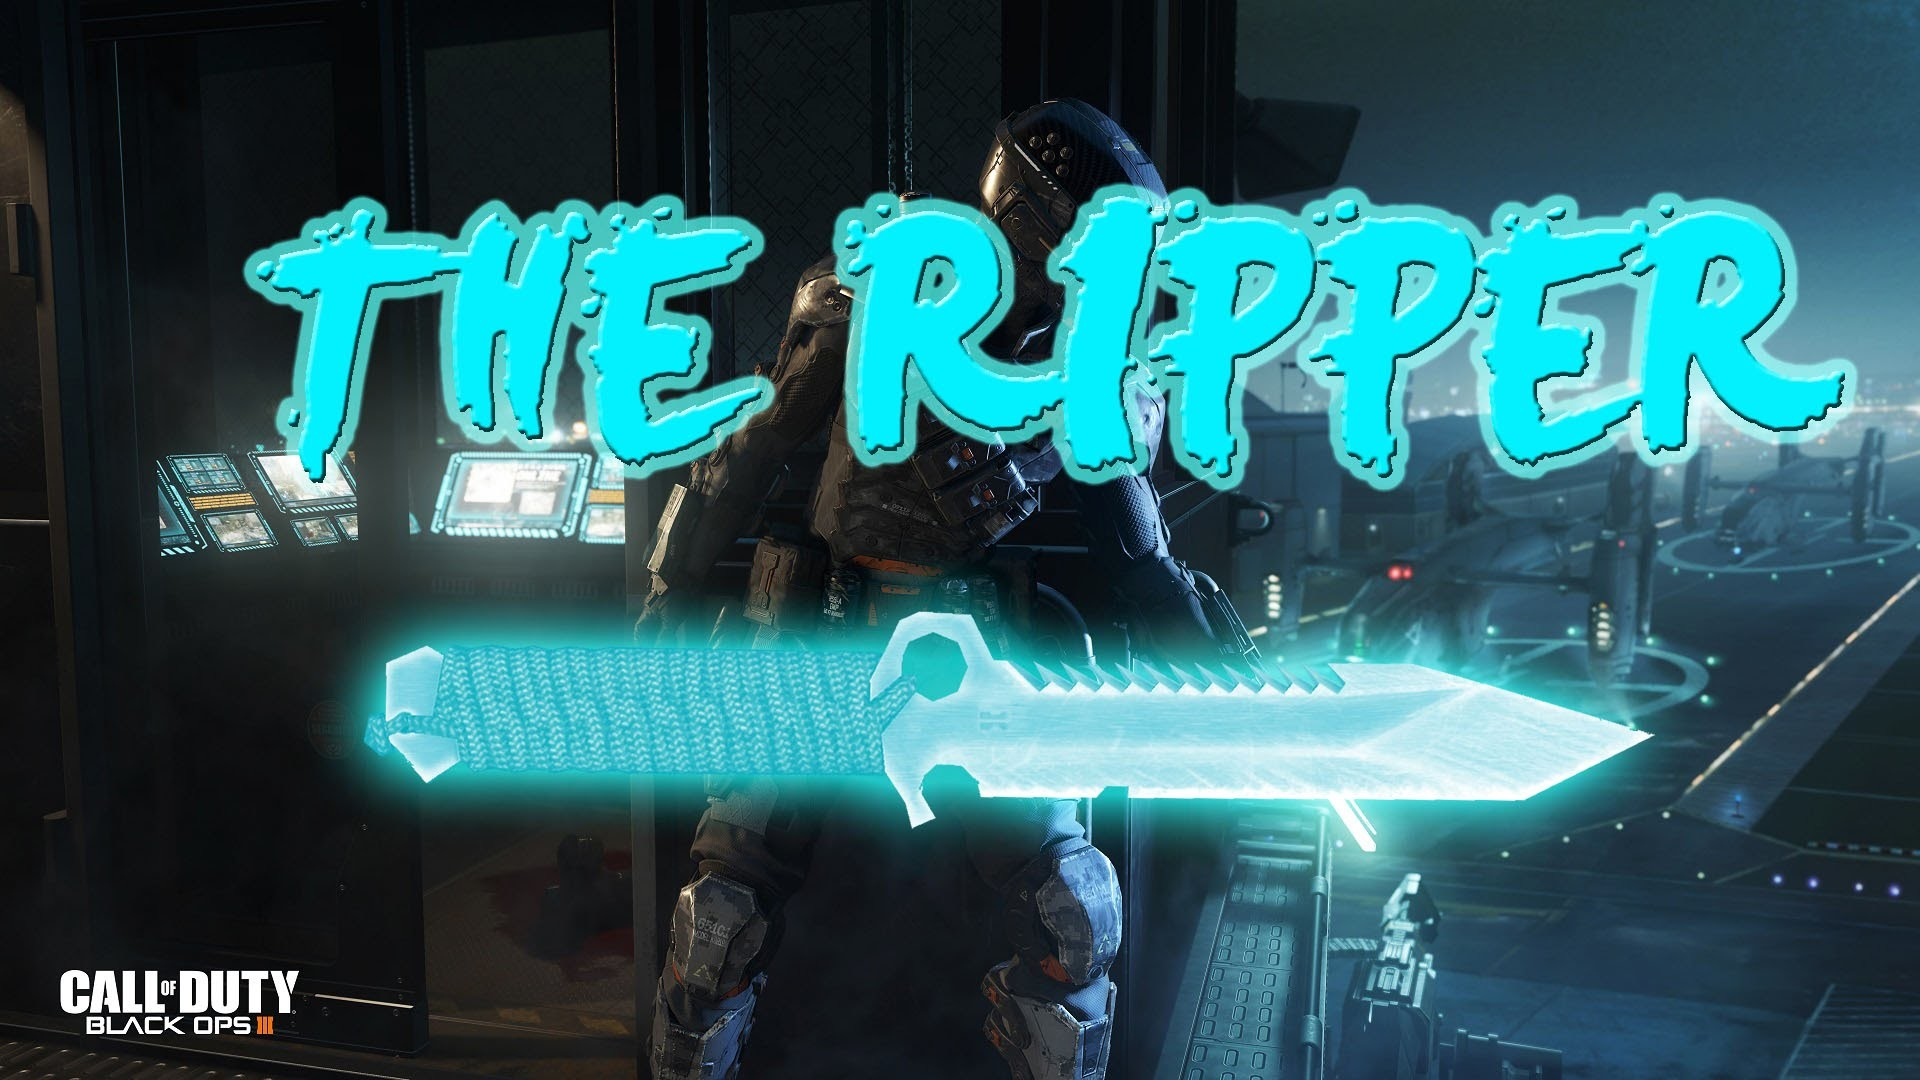 Black Ops 3 Knifing! THE RIPPER!!! NEW Spectre Knife!